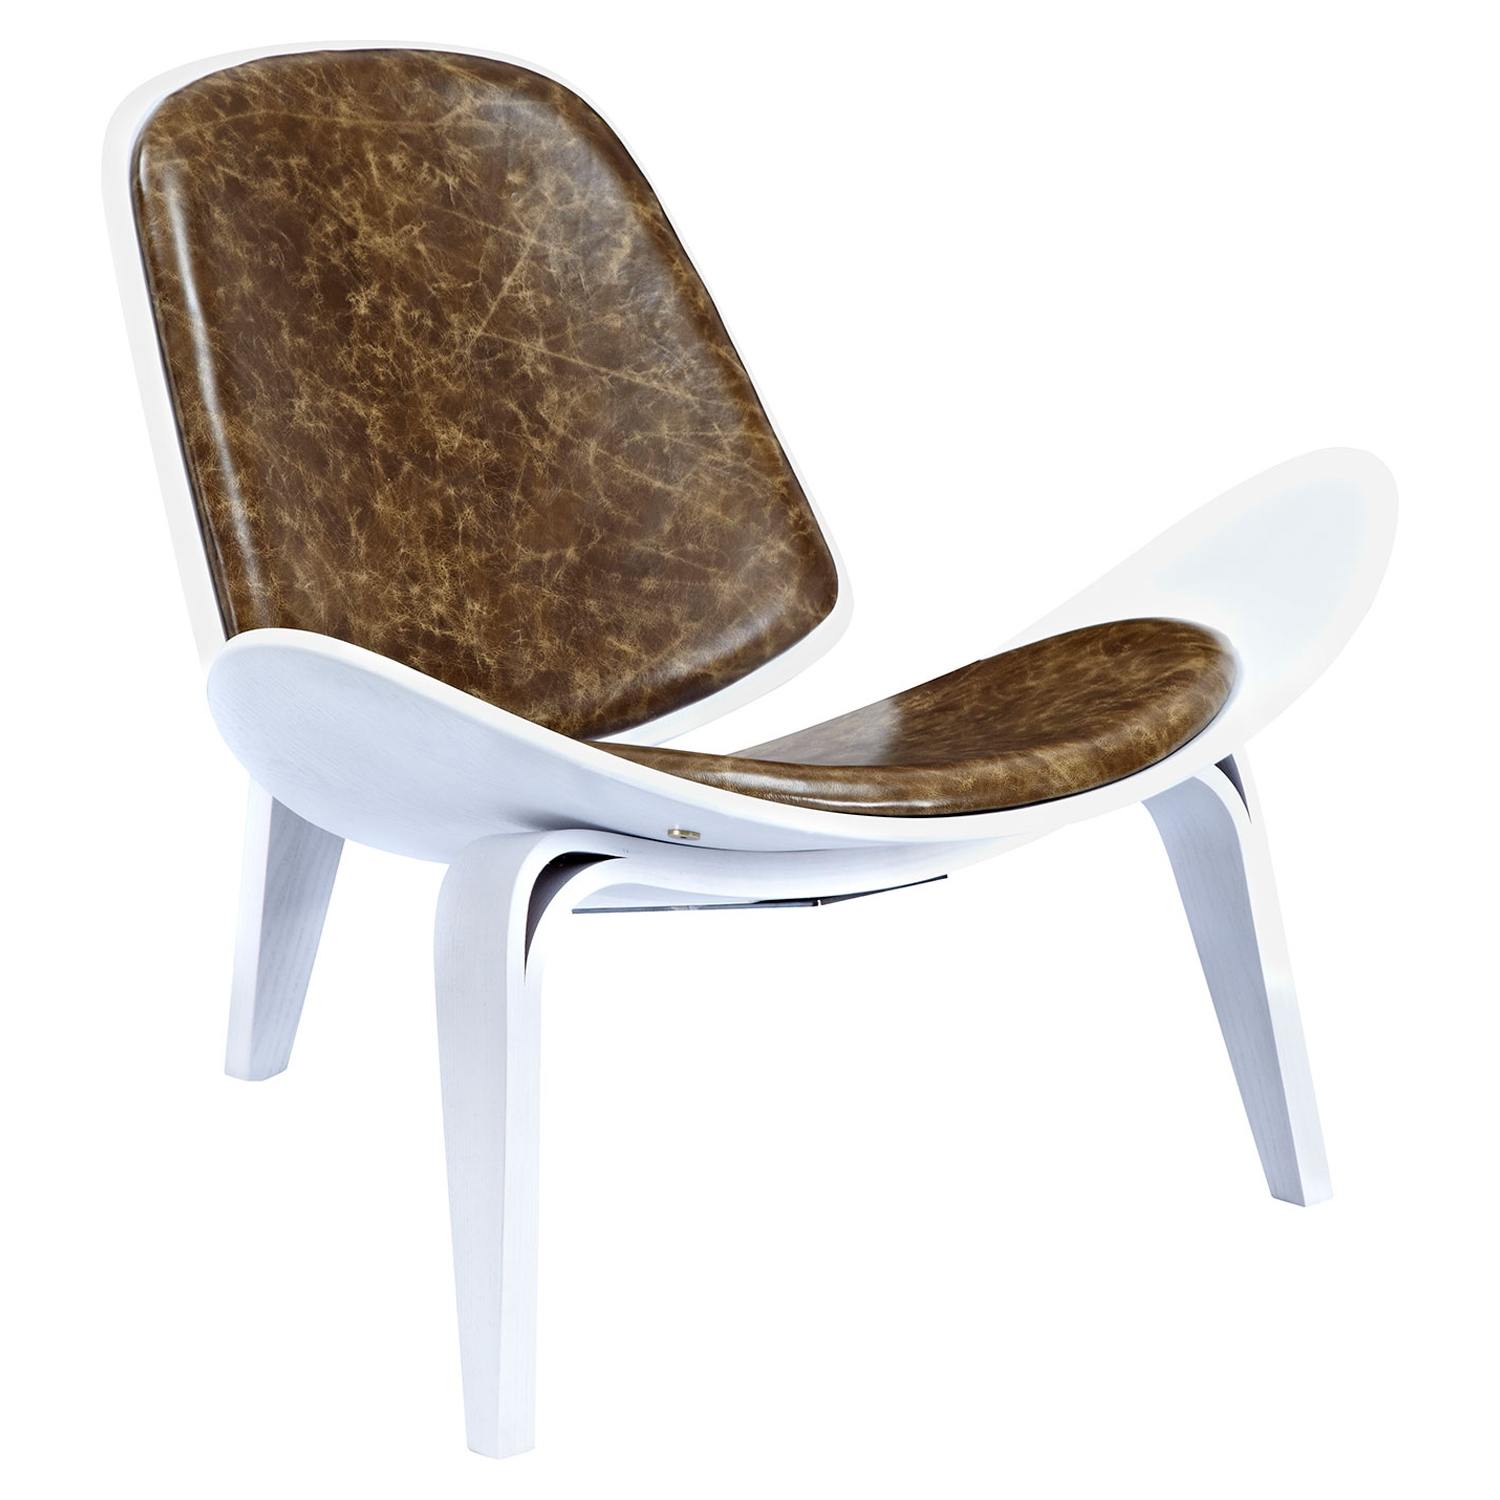 Shell Accent Chair - Plaermo Olive